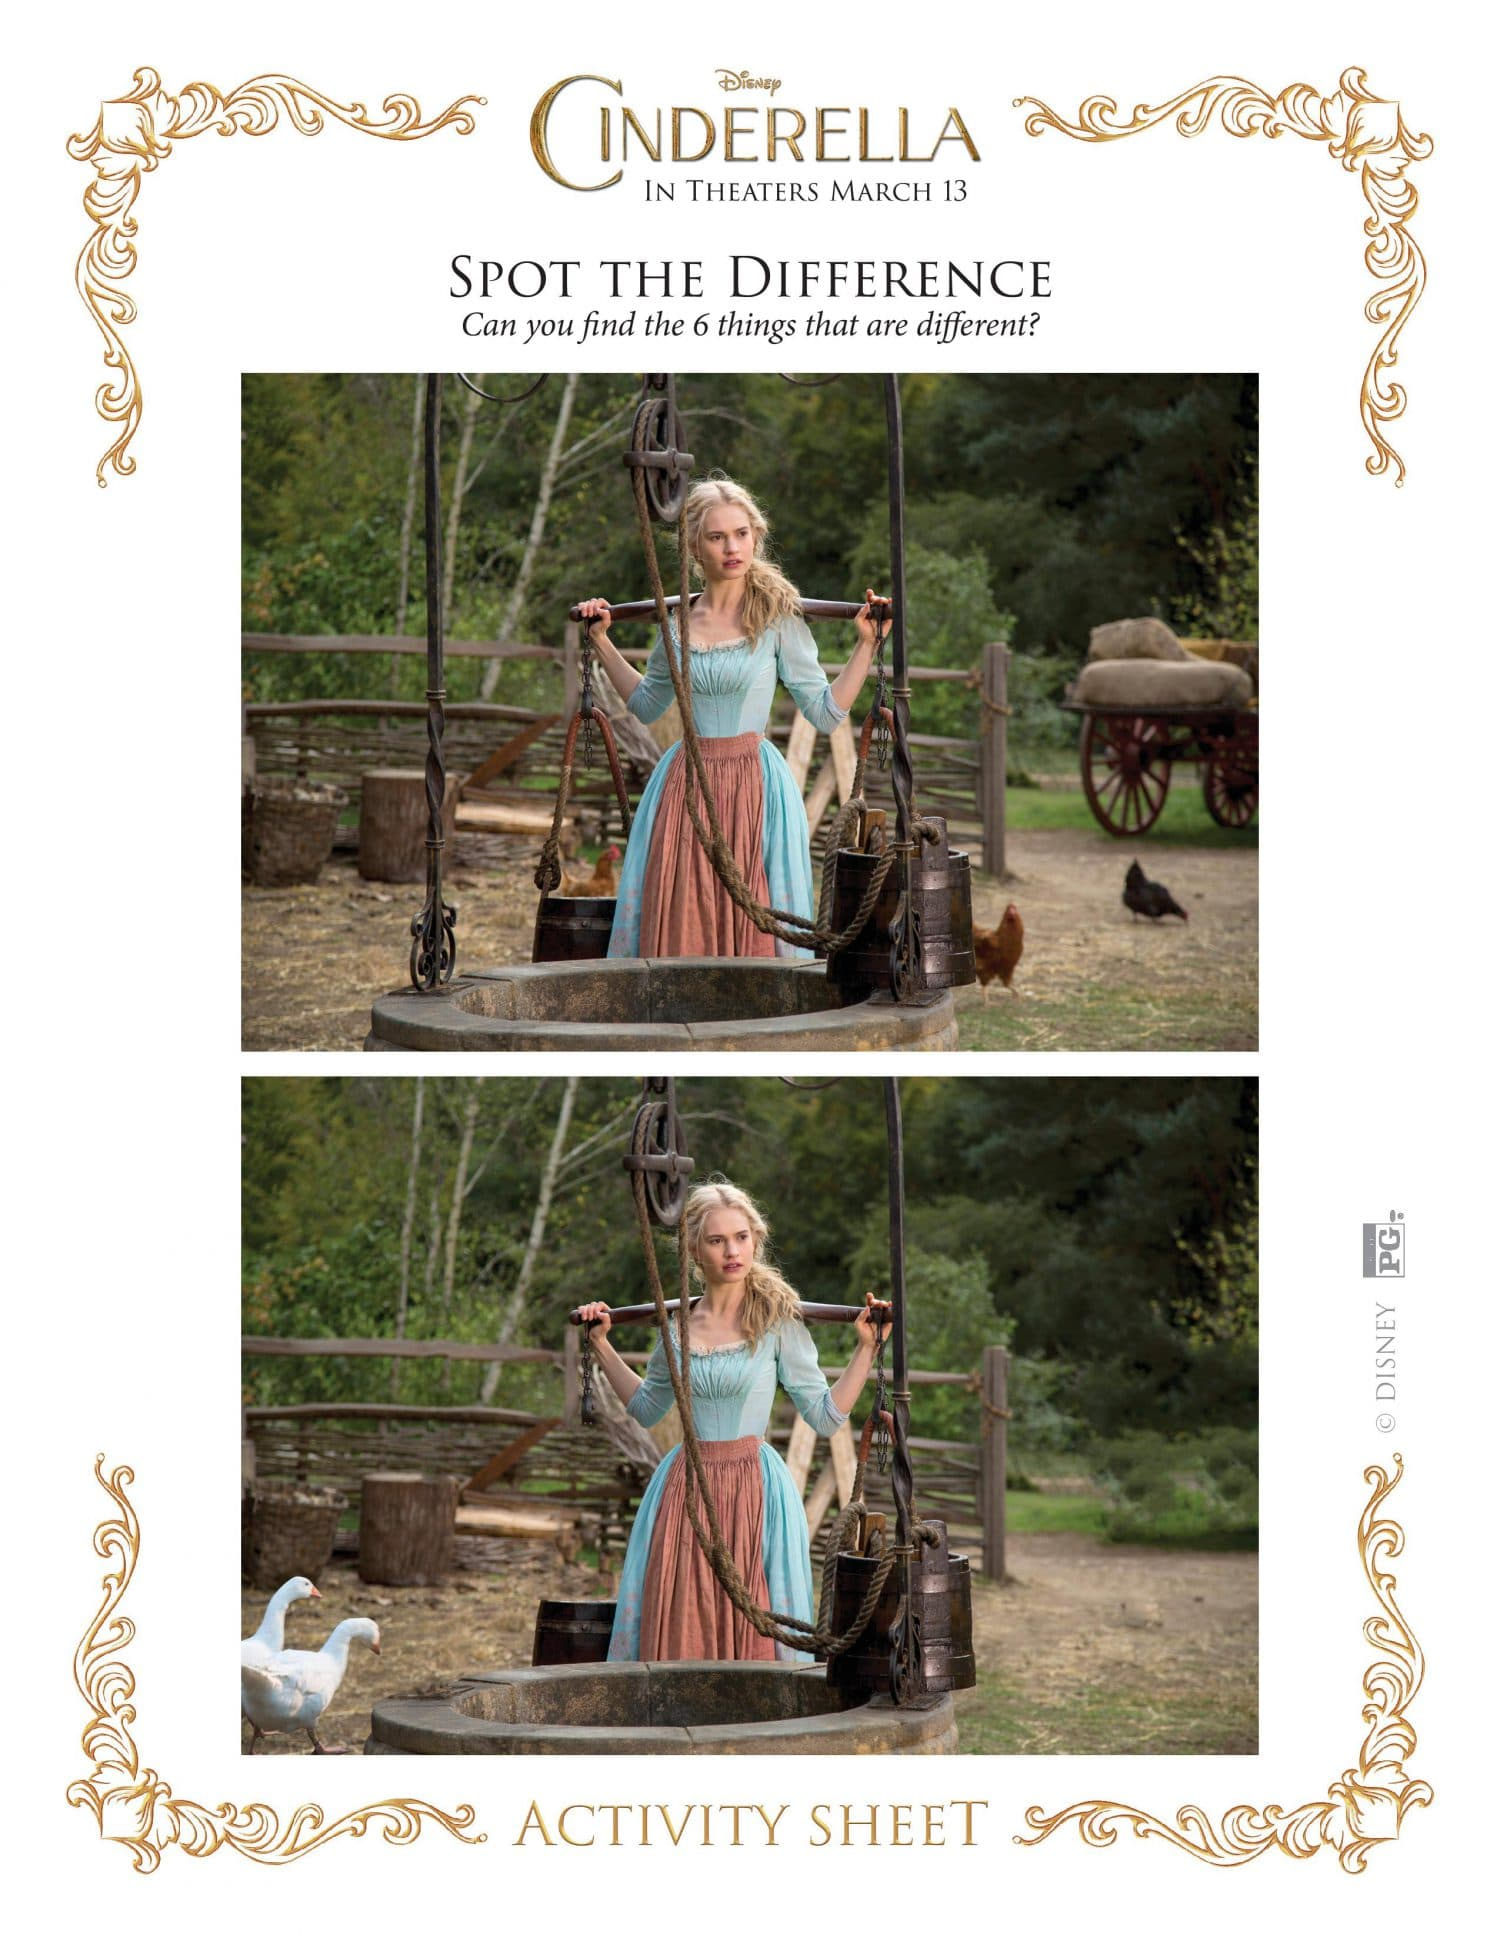 Cinderella spot the difference